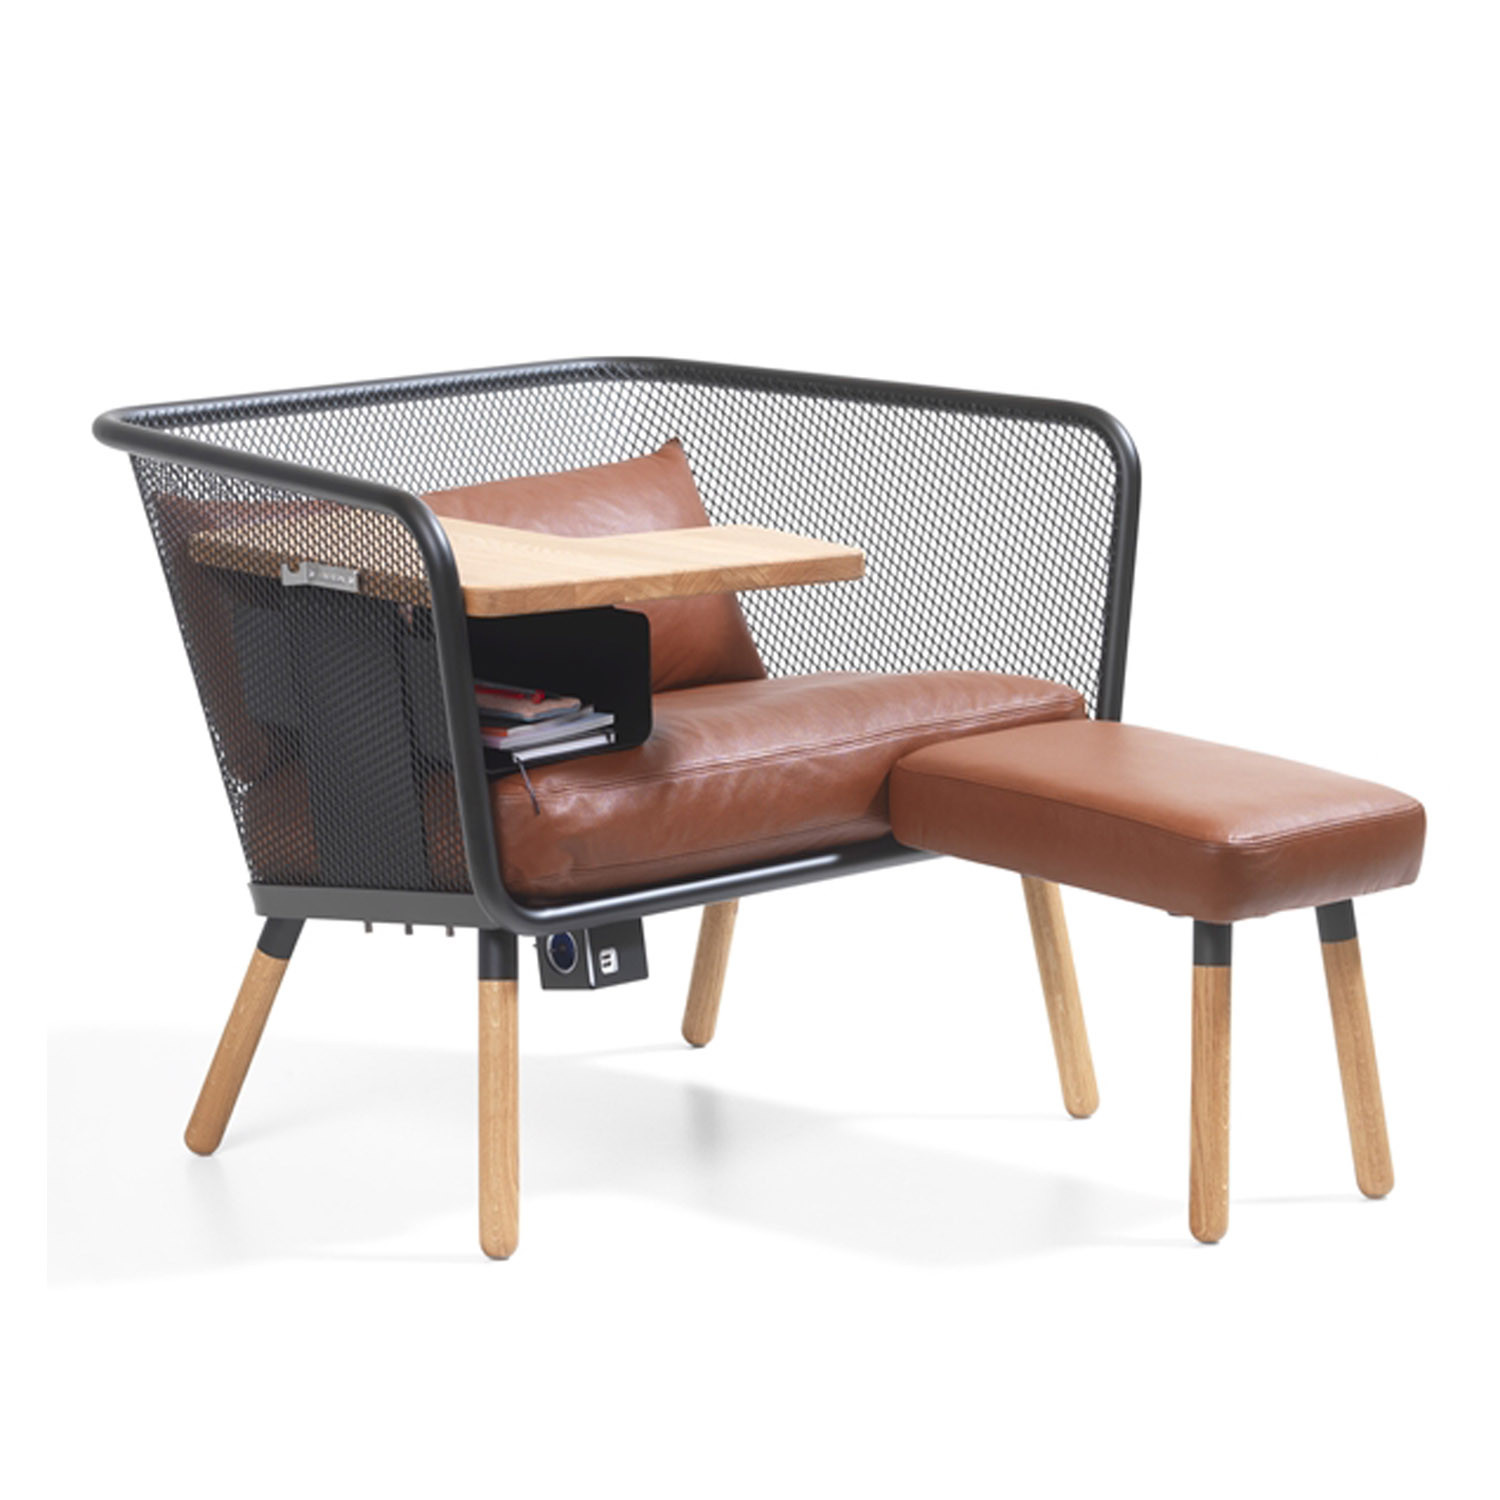 Honken Workstation with Ottoman